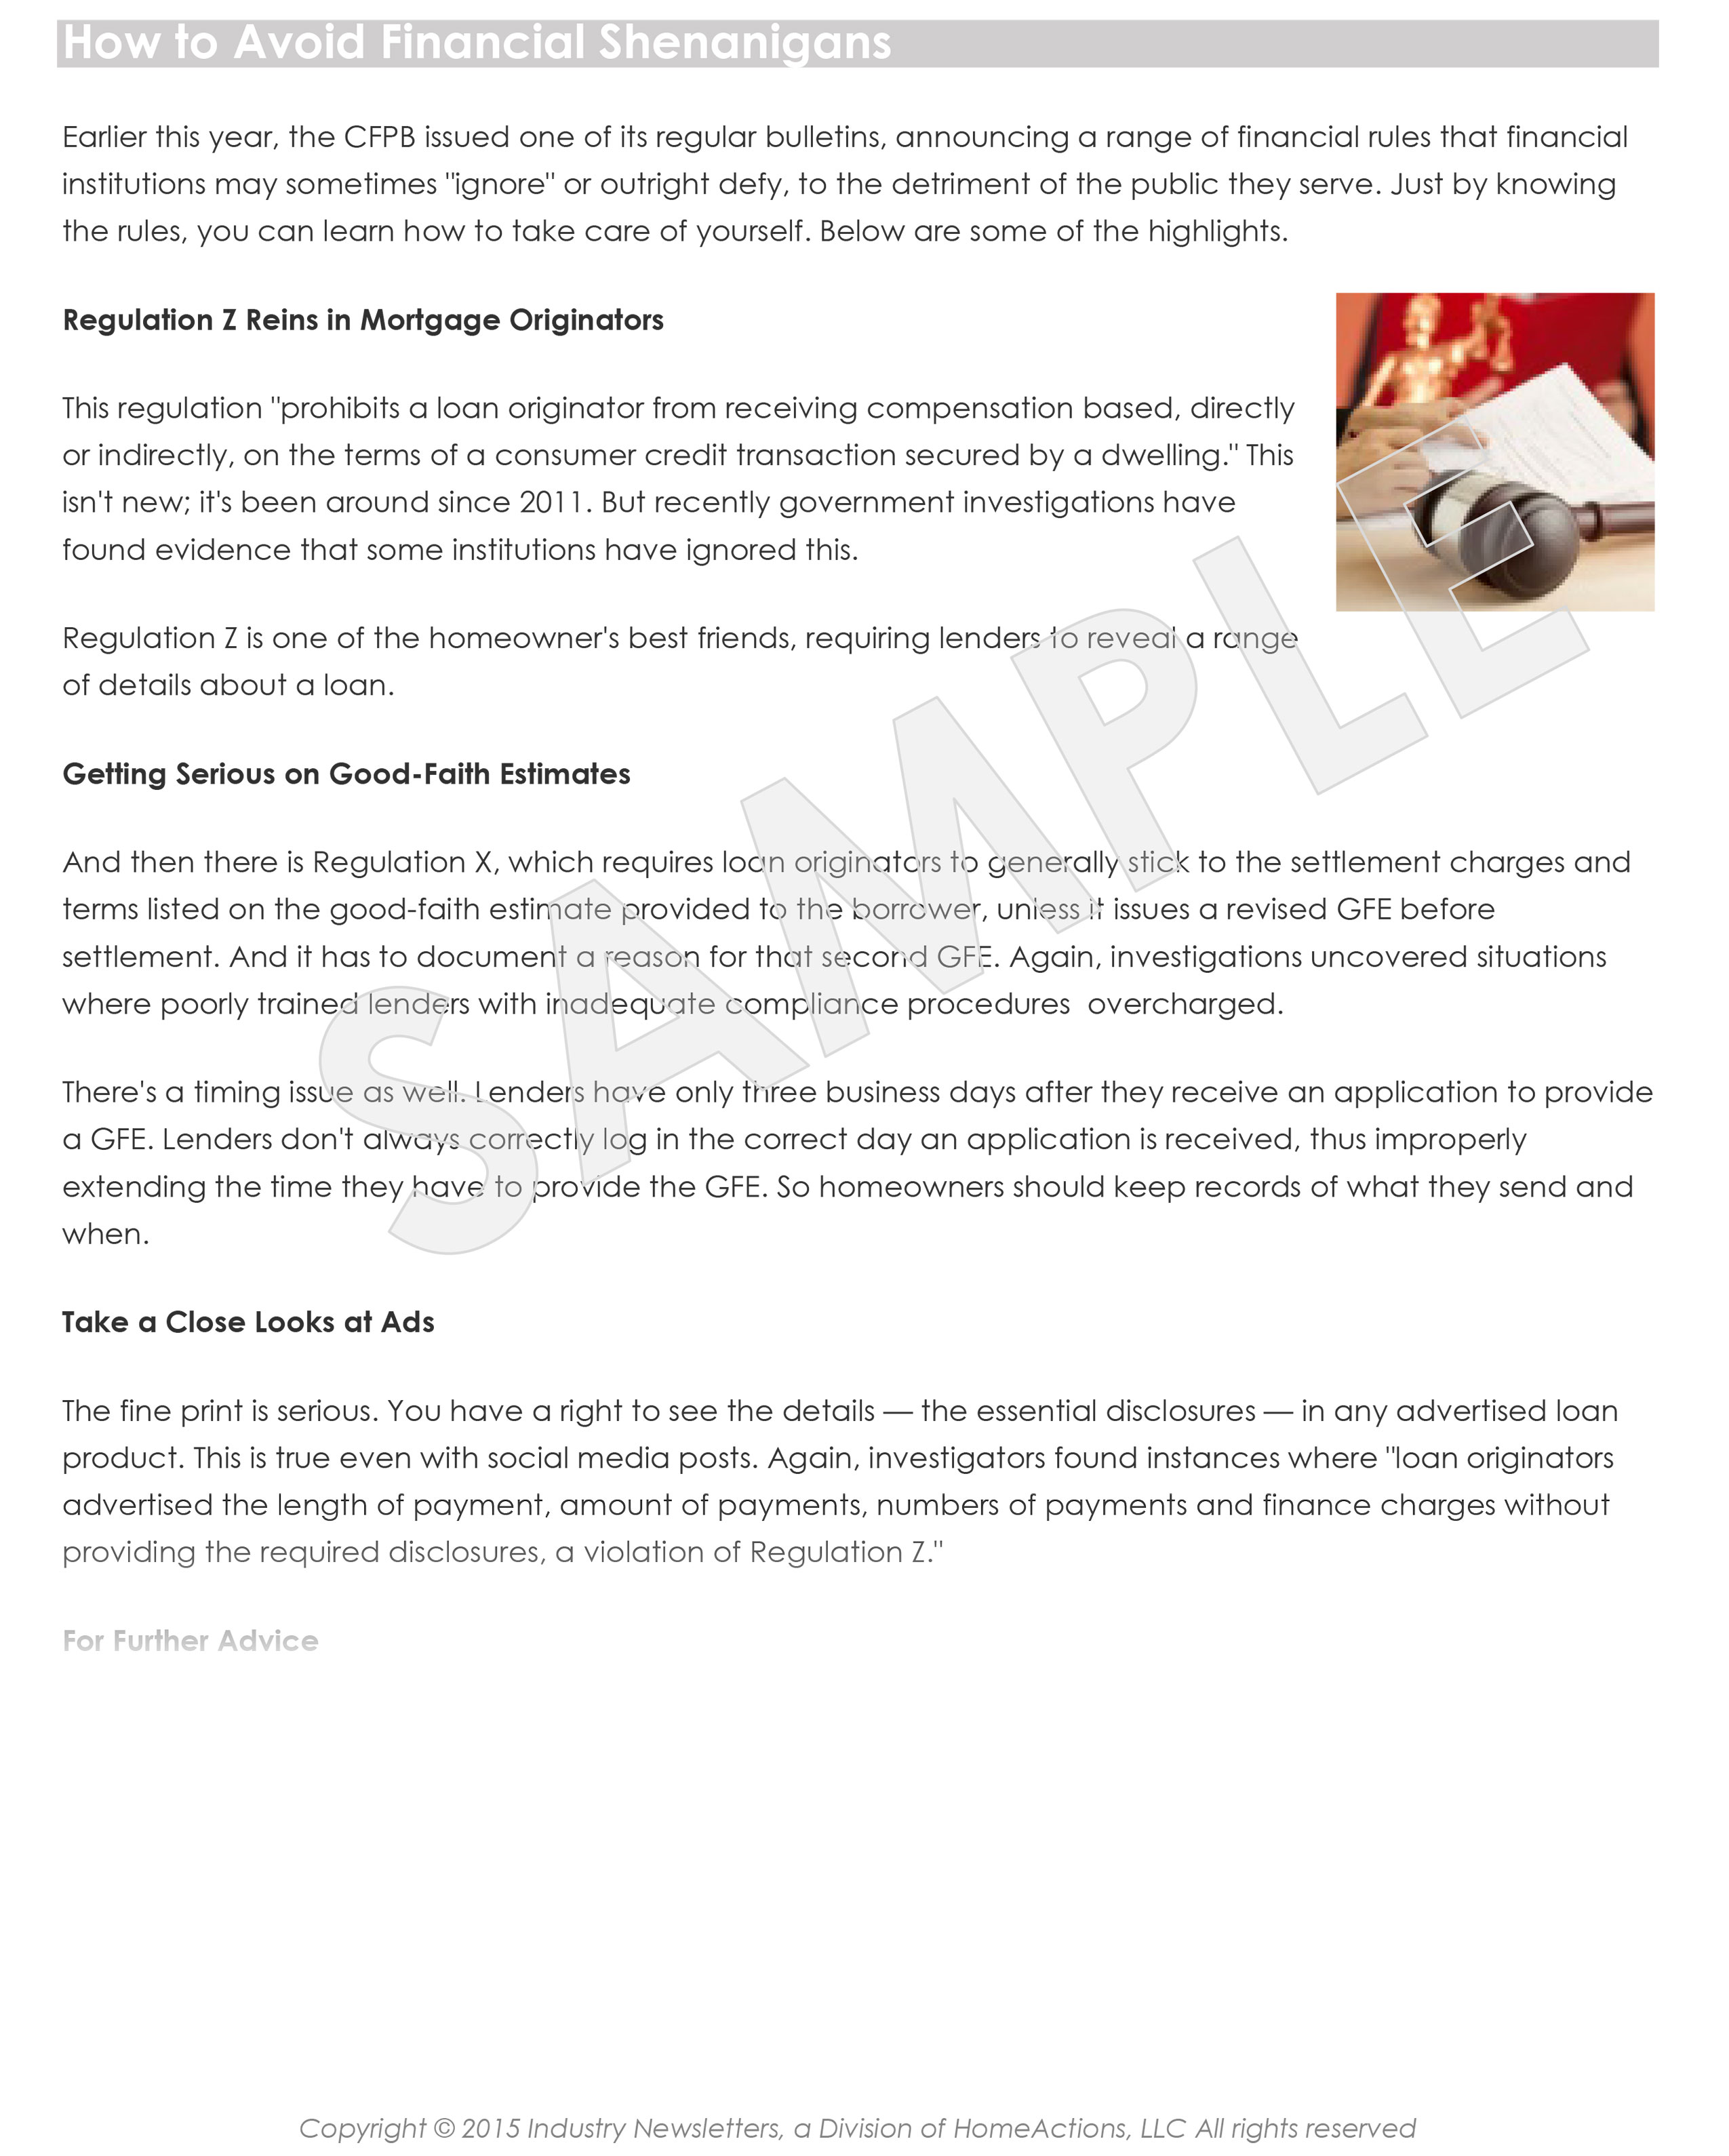 CPA Marketing Content Home Financing Email Newsletter Article Preview